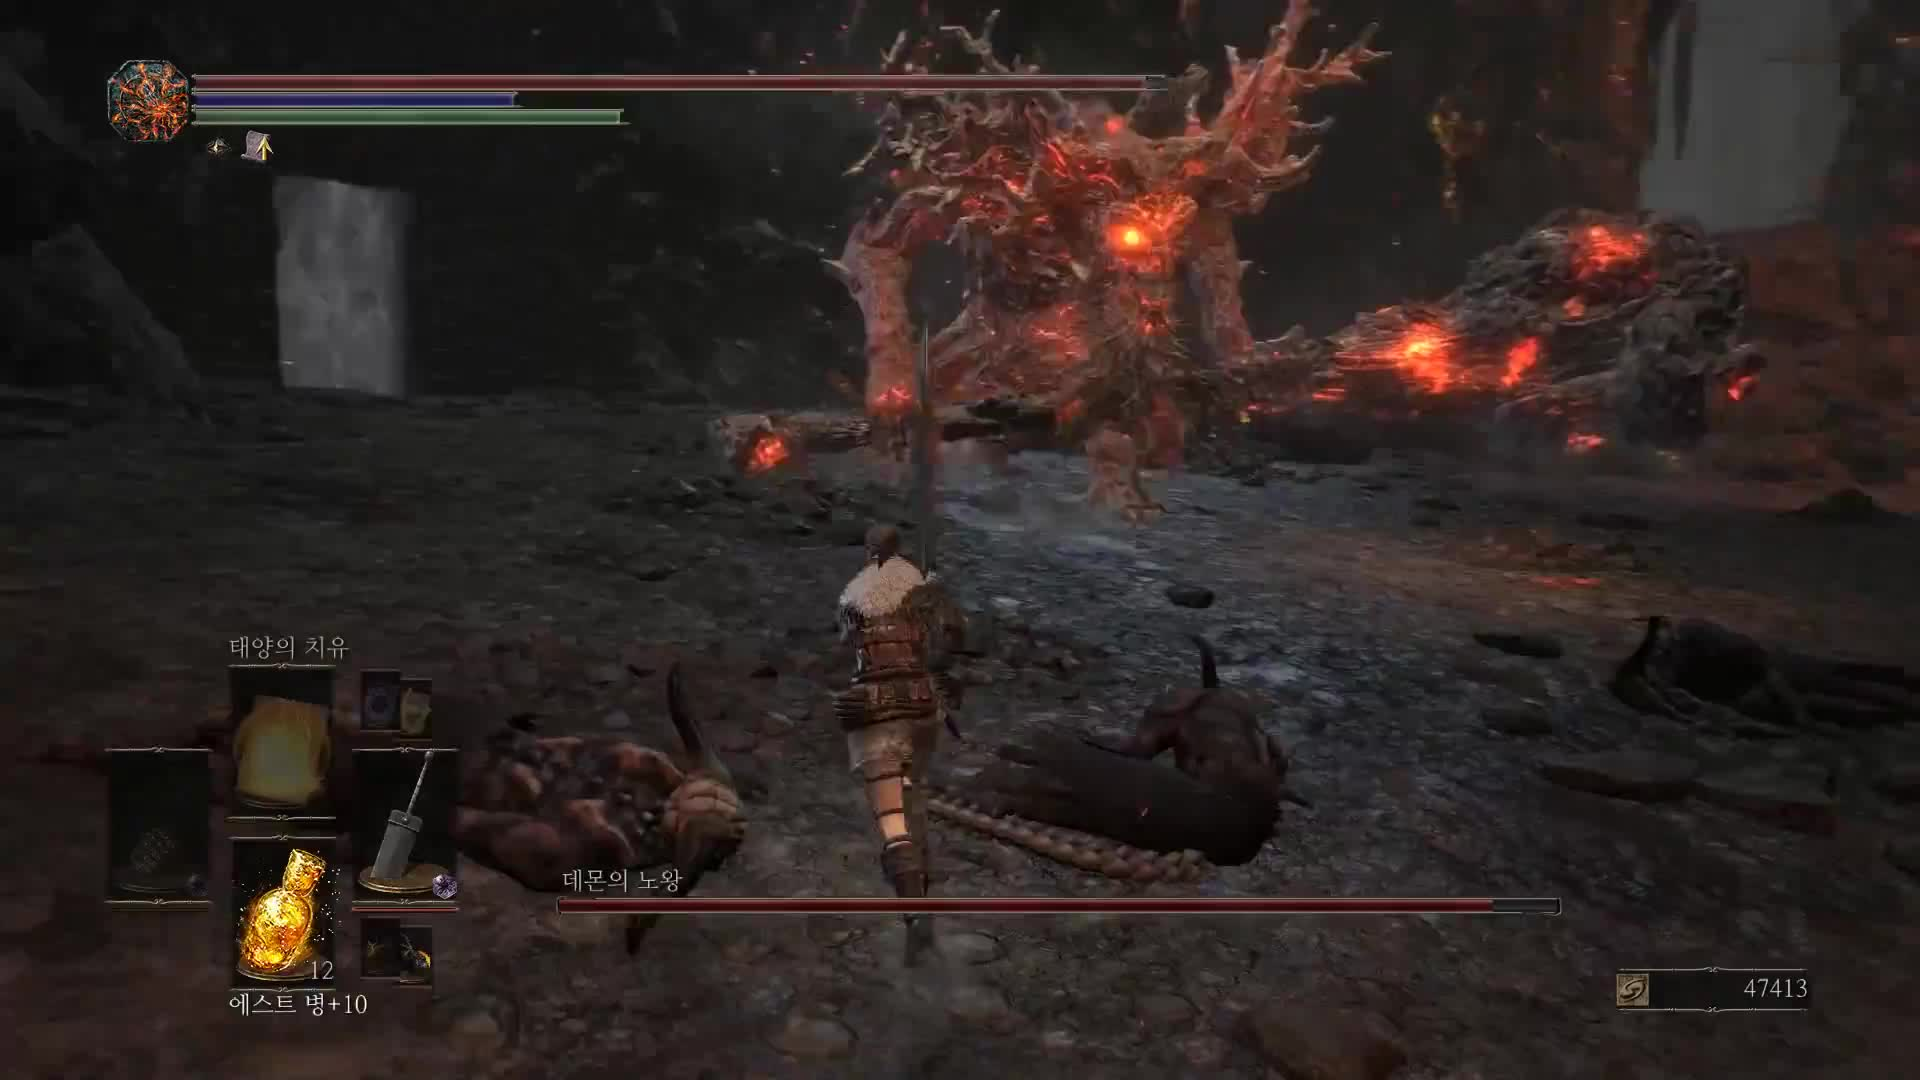 Dark Souls 3 Best Build Gifs Search | Search & Share on Homdor